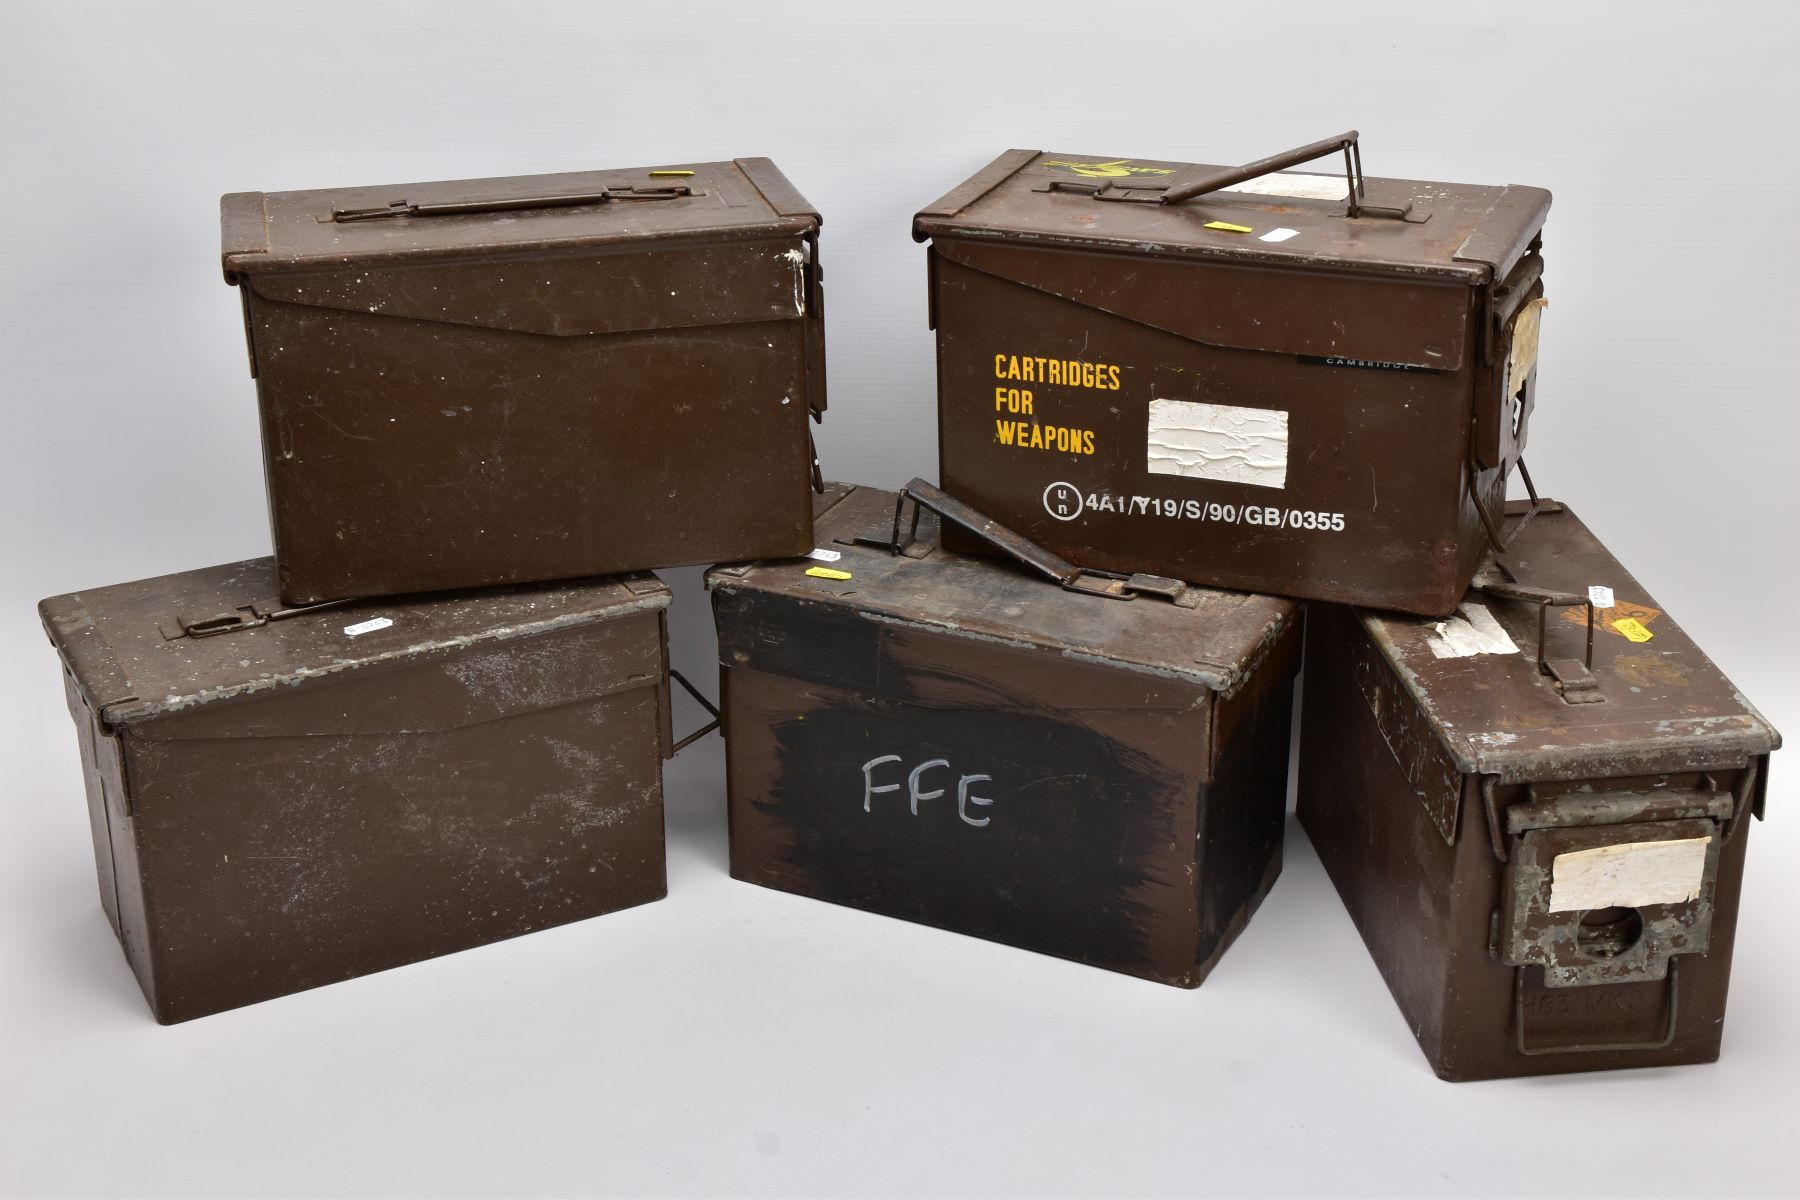 FIVE METAL MILITARY AMMUNITION BOXES WWII and later era, two of them being marked 5.56mm and 7.62mm,